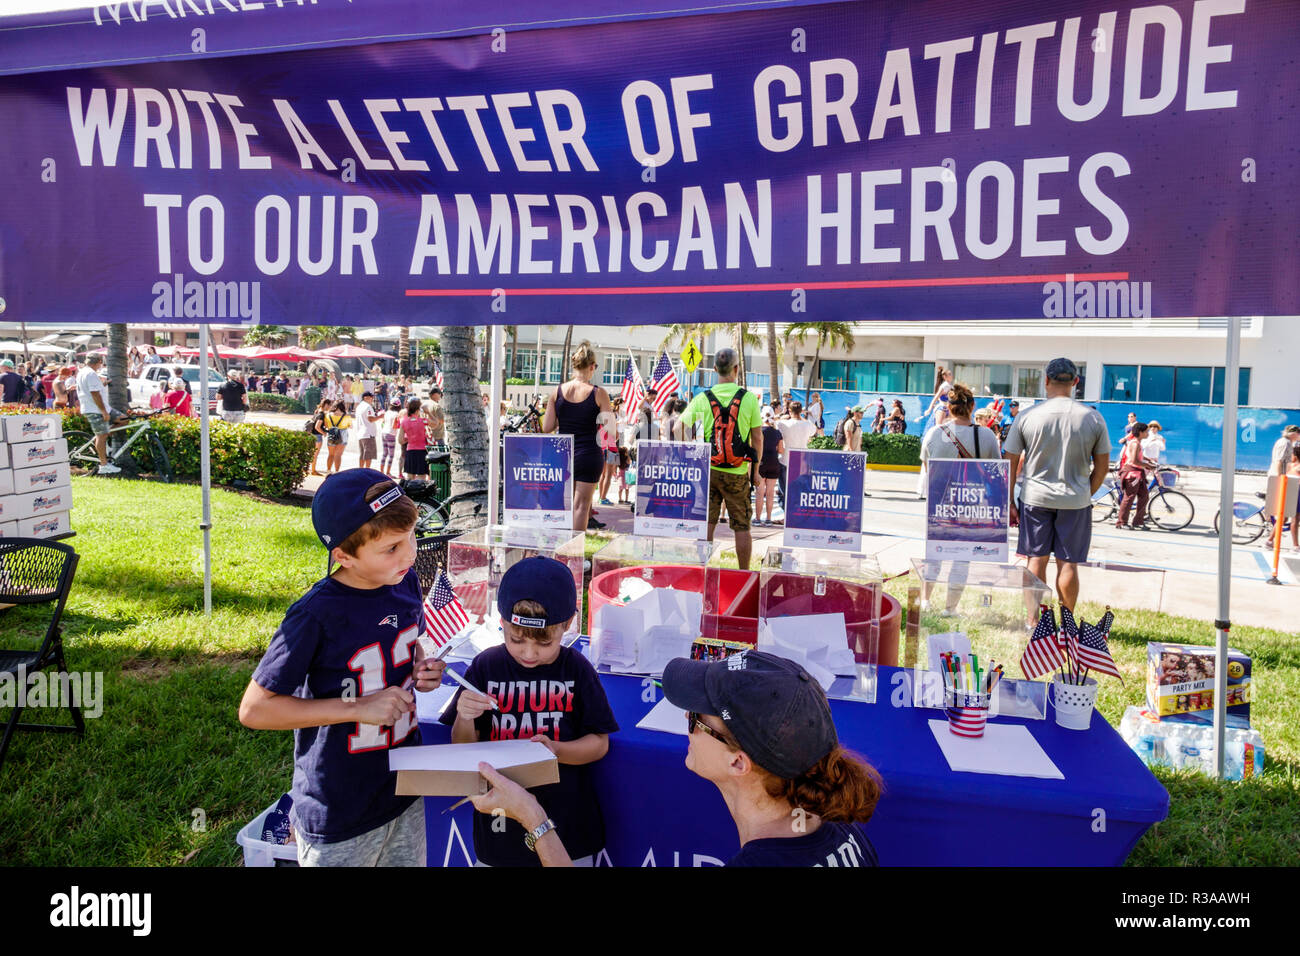 Miami Beach Florida Ocean Drive Veterans Day Parade activities write letter gratitude American heroes first responders mother boy son writing - Stock Image